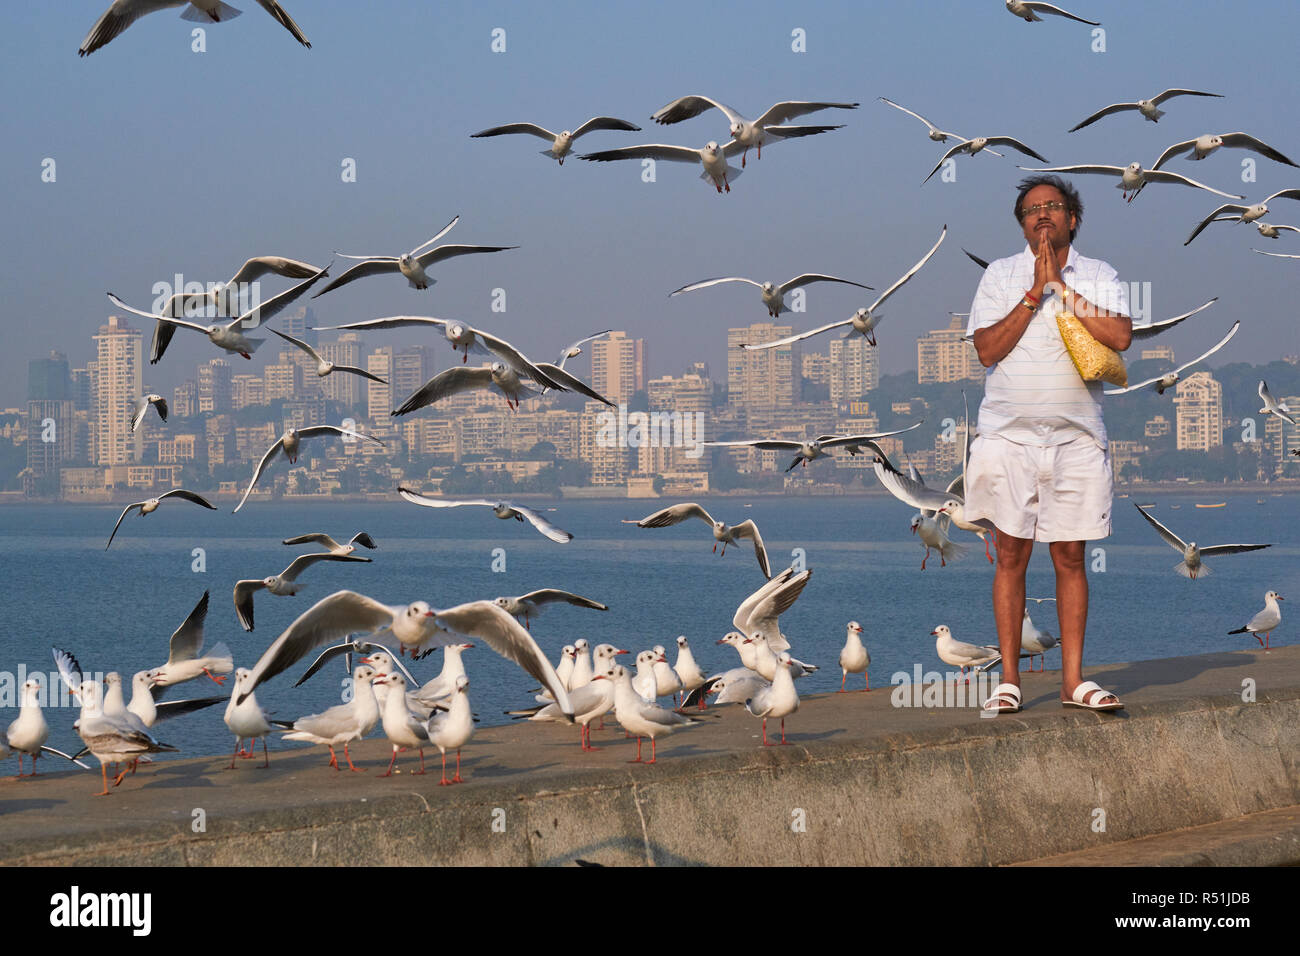 A Hindu praying towards the sun at Marine Drive, a seaside boulevard lining the Arabian Sea in Mumbai, India, surrounded by migratory seagulls Stock Photo